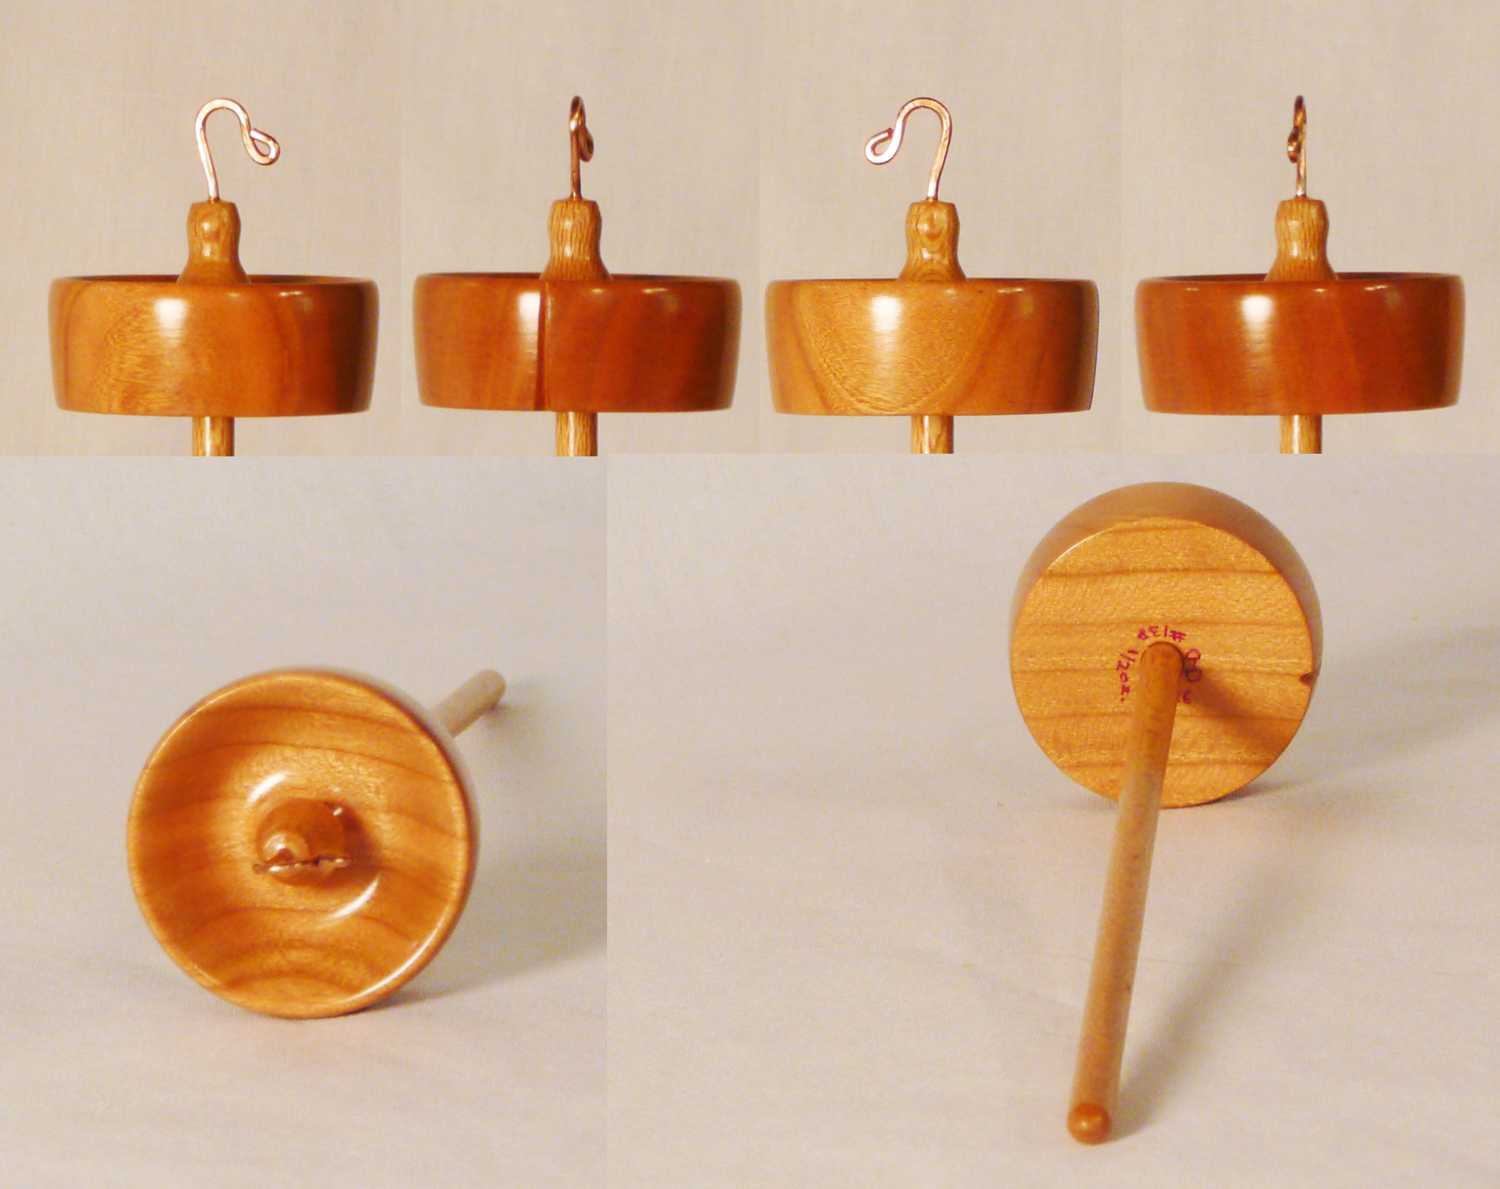 Cynthia D. Haney turned this drop spindle from Cherry and Sycamore woods, signed and numbered 138, weighing 1/2 oz.